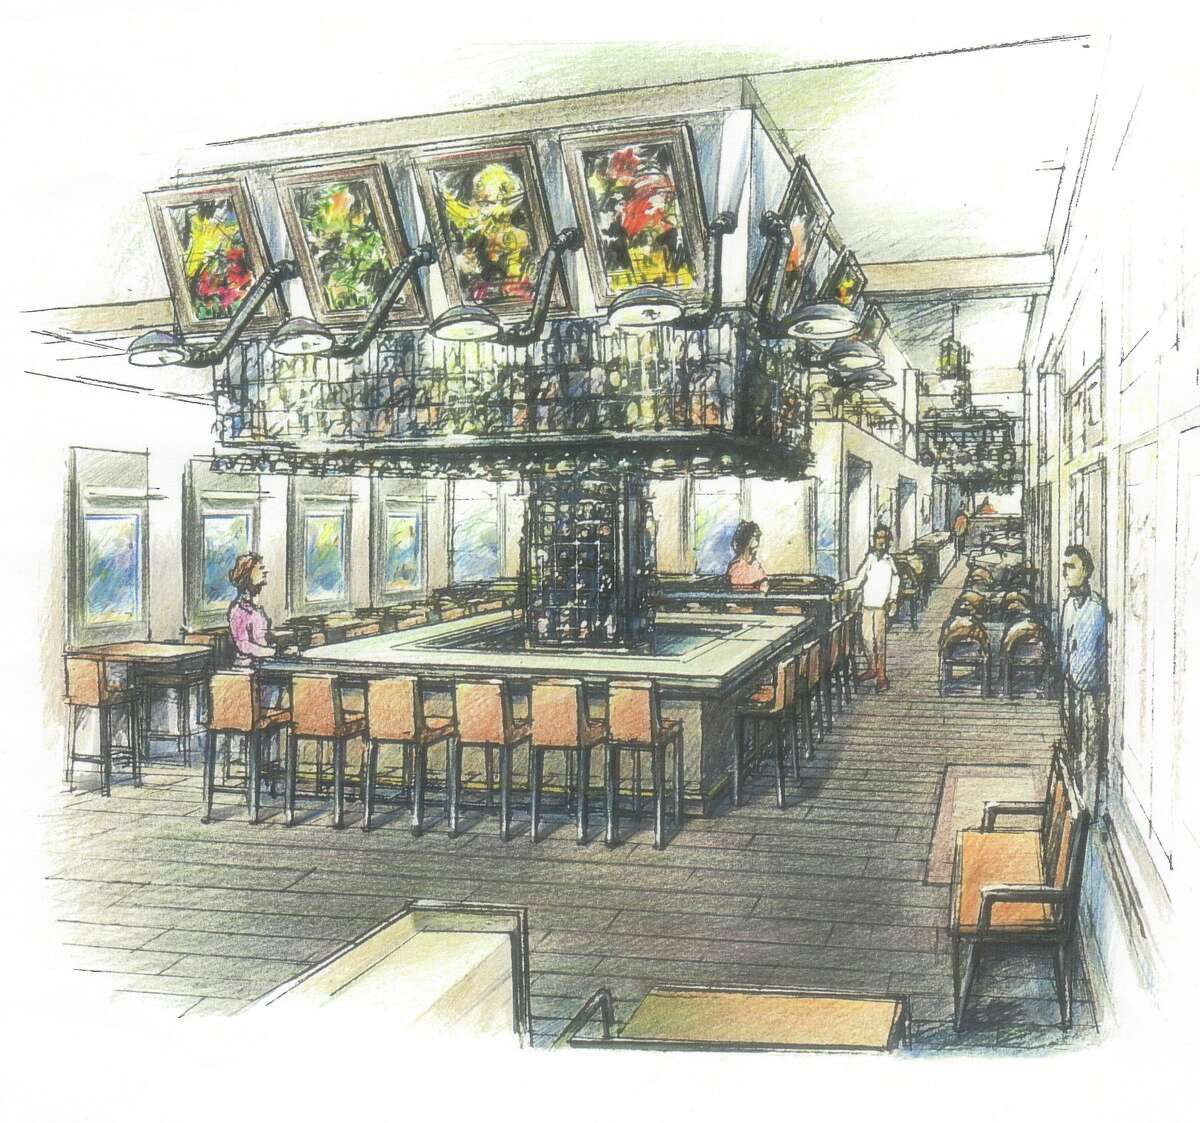 Rendering of bar in Brasserie du Parc, a French brasserie planned for One Park Place in downtown Houston. The restaurant is expected to open fall 2016.